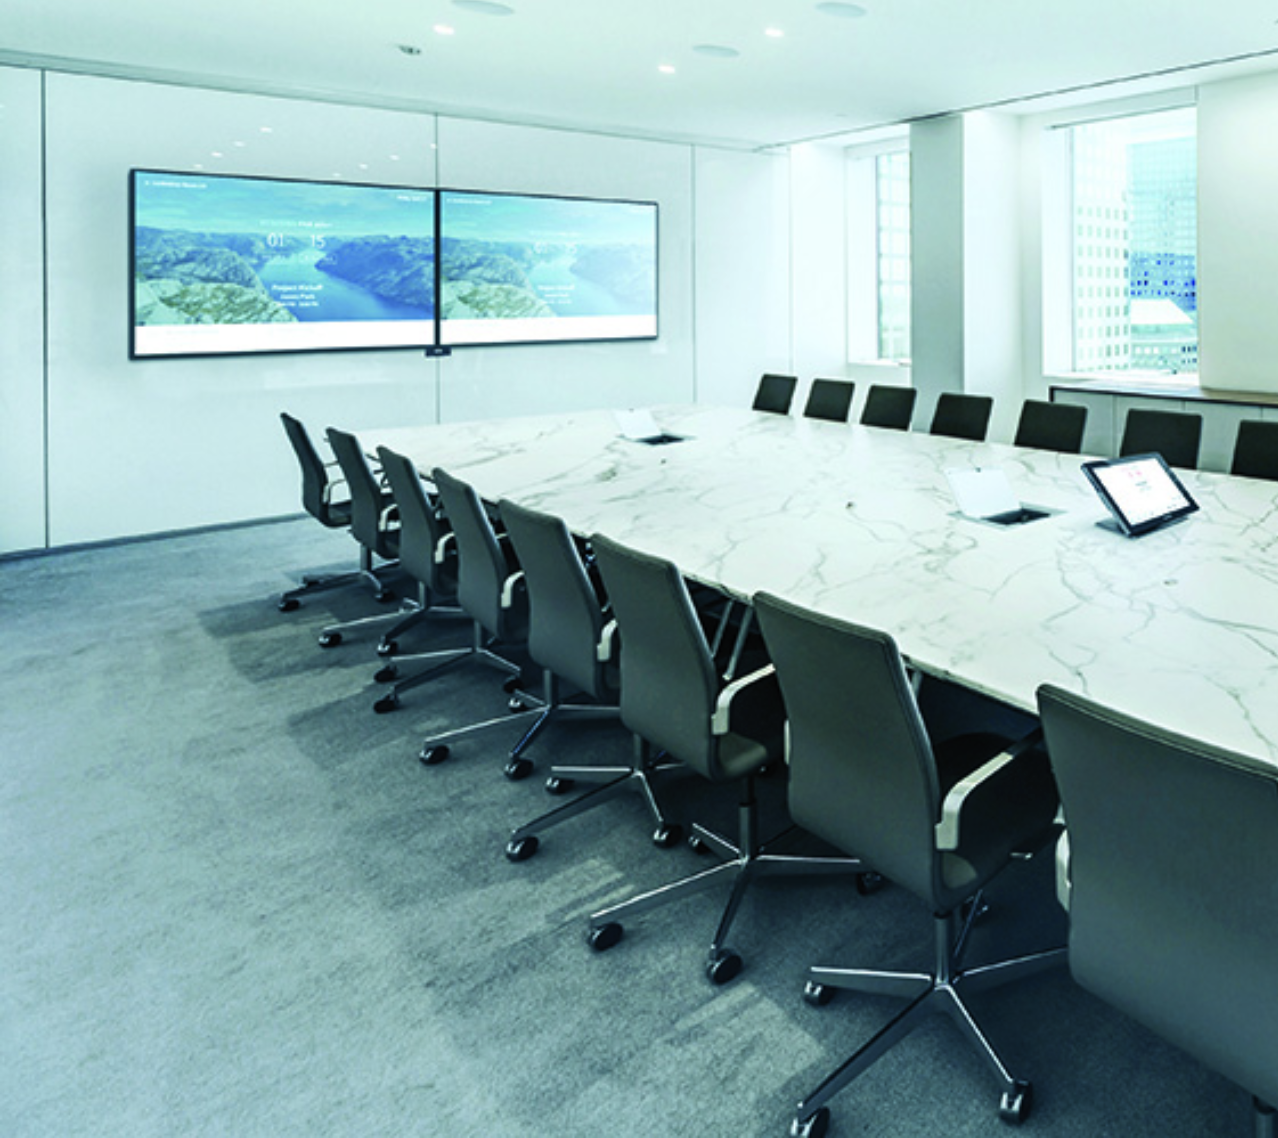 Presentation Conference Room - Empower larger meetings in dual-display presentation and video conferencing rooms. Crestron integrates and controls your favorite codec and makes it easy to book rooms, start meetings, share content, collaborate, and control the entire room from a single, intuitive touch screen interface.